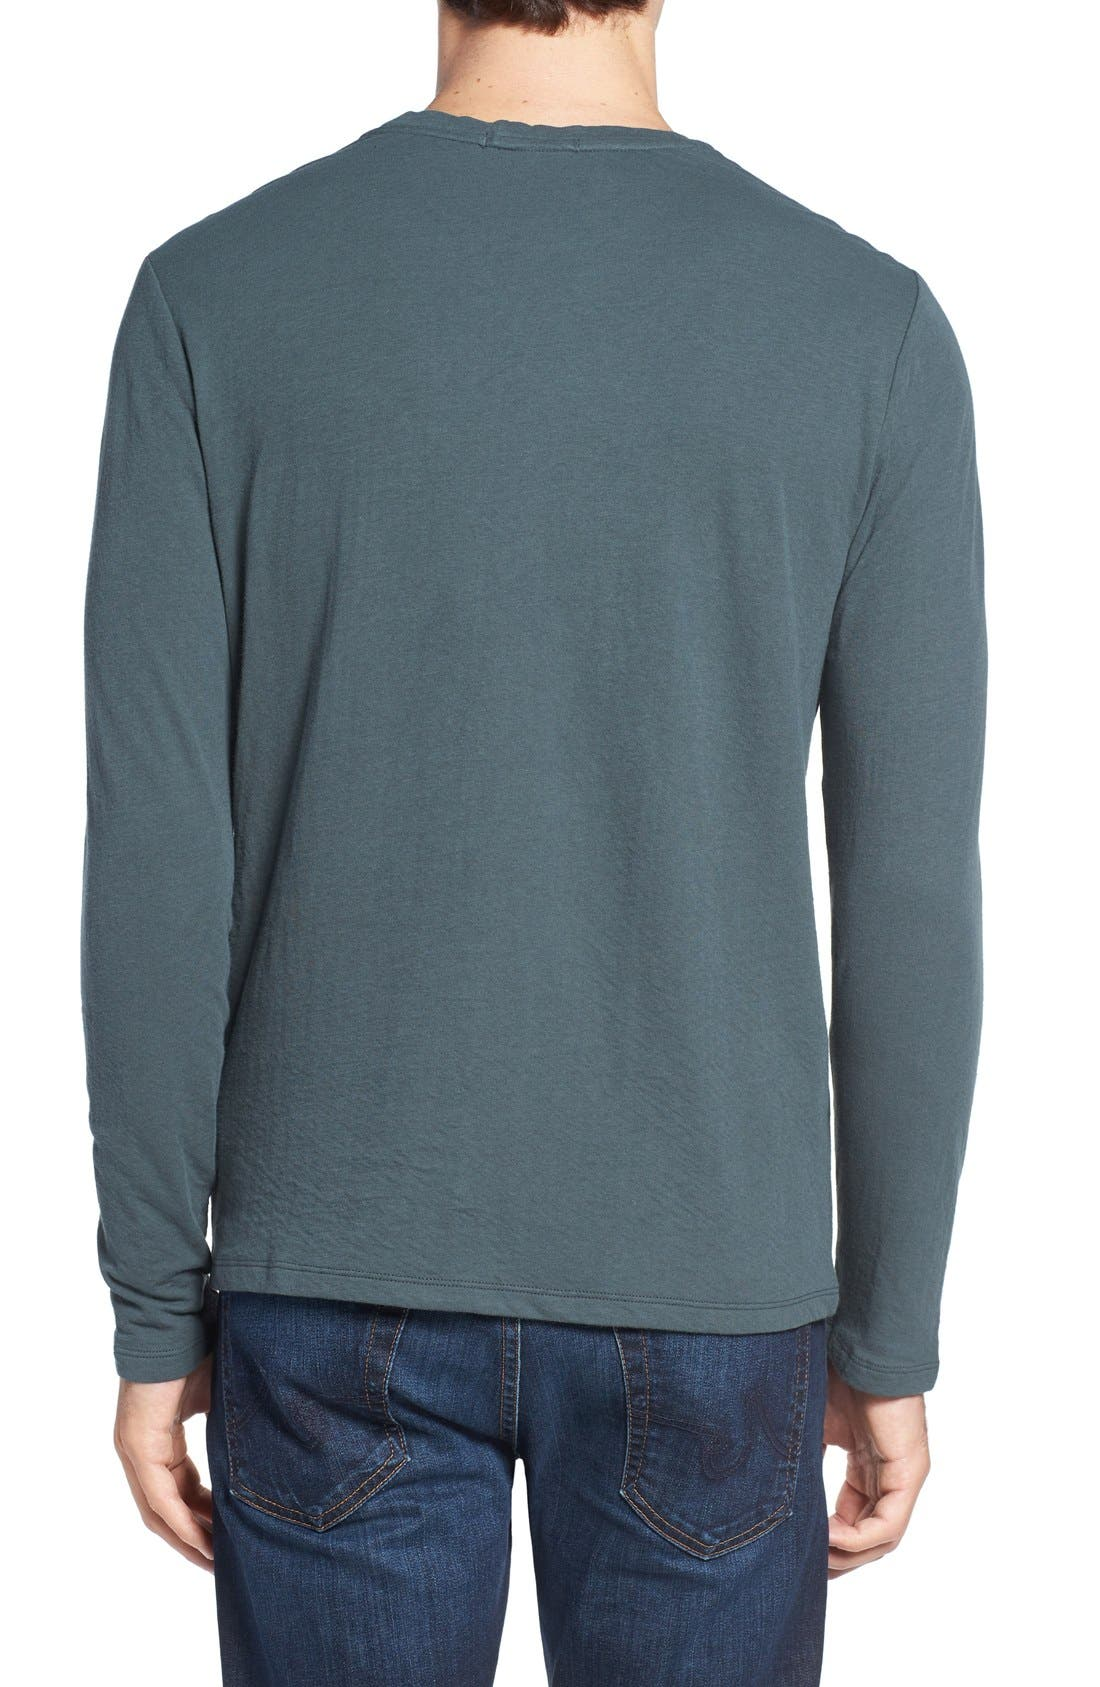 Alternate Image 2  - Zachary Prell Long Sleeve Crewneck T-Shirt